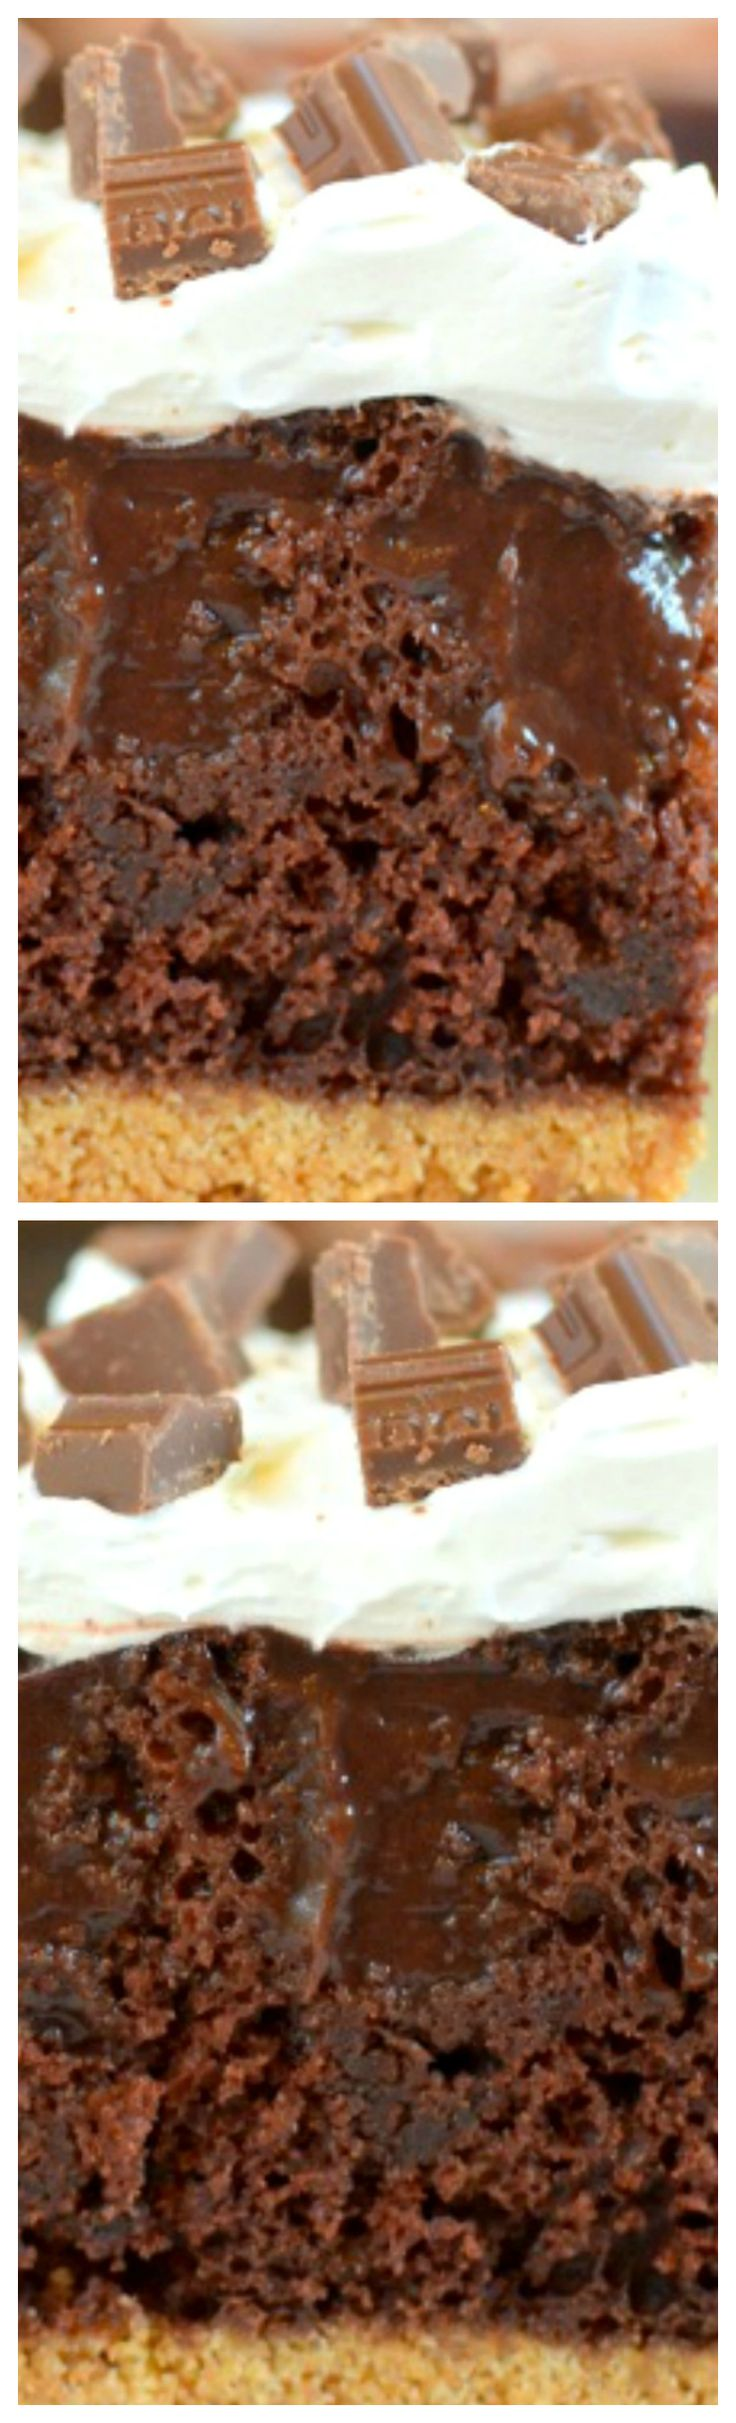 Chocolate S'mores Pudding Cake ~ A graham cracker crust, chocolate pudding, and a marshmallow topping give this cake a complete S'mores taste. Perfect summer time dessert without a campfire mess